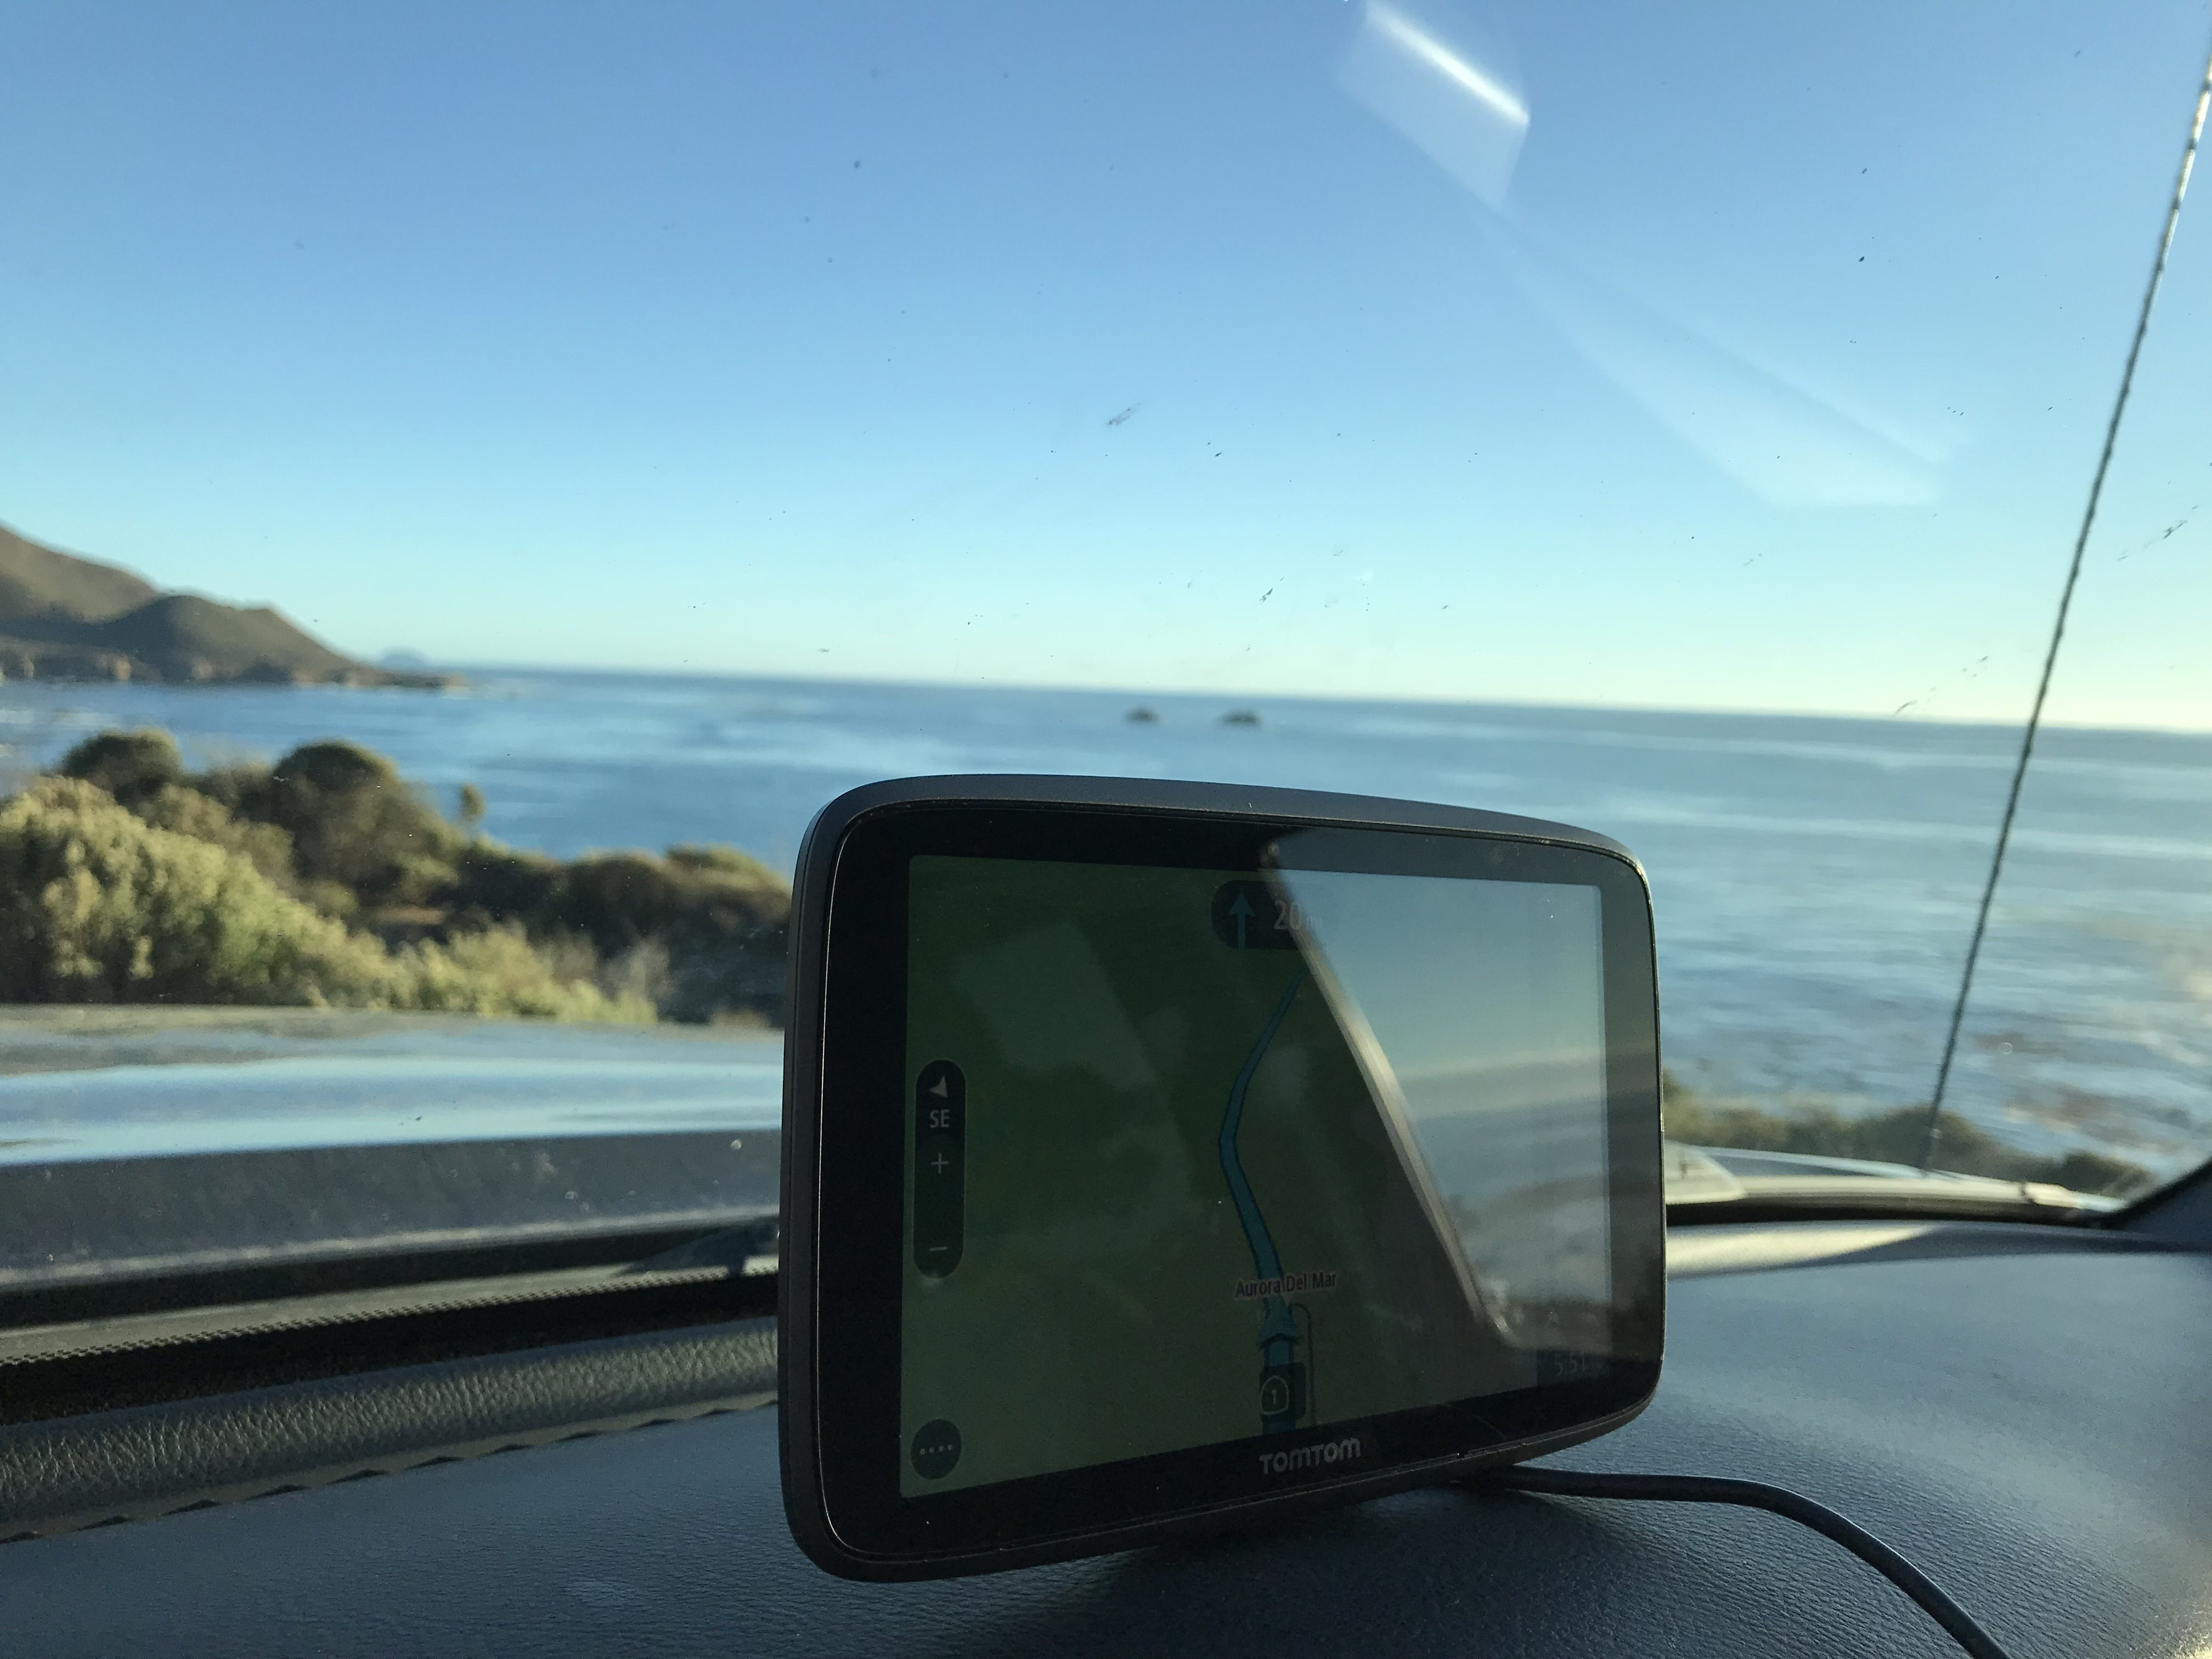 TomTom Go Camper - Final thoughts